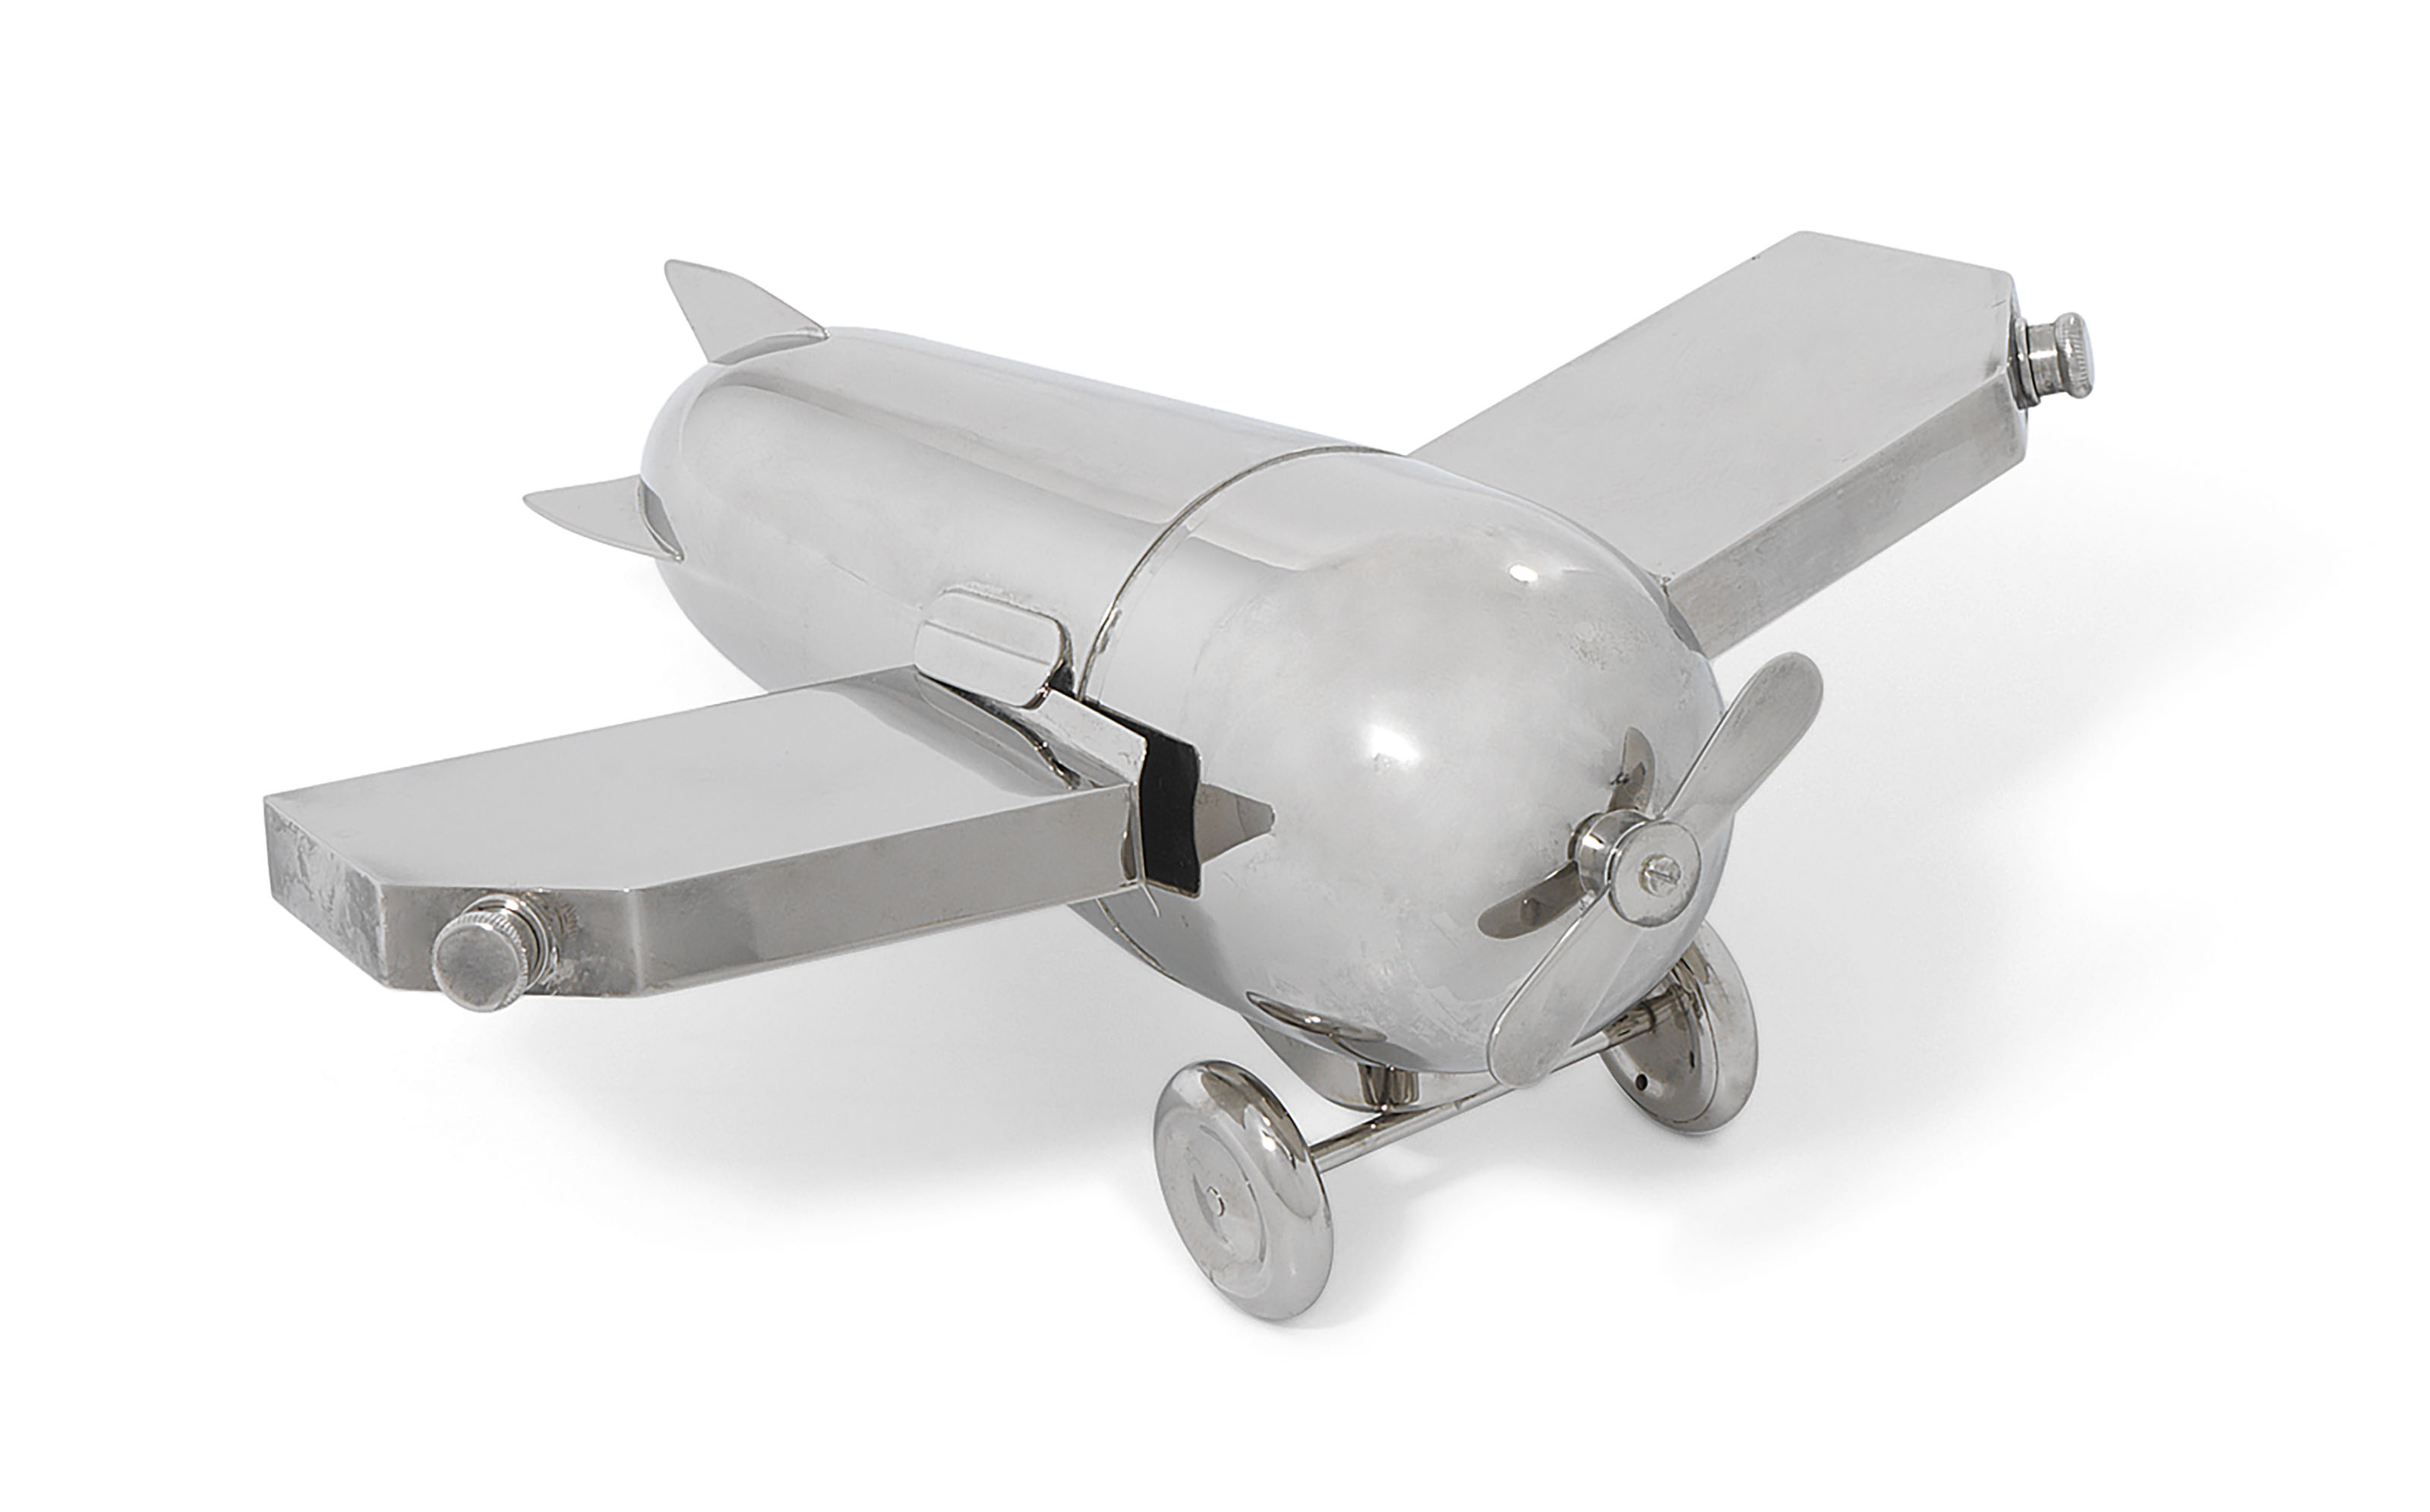 A German silver-plated novelty cocktail shaker in the form of a monoplane, mark of J.A. Henckels, first half 20th century. 9⅞  in (25  cm) long. Estimate £3,000-5,000. This lot is offered in The Collector Silver and 19th Century Furniture, Sculpture, Ceramics & Works of Art on 14 November 2019 at Christie's in London